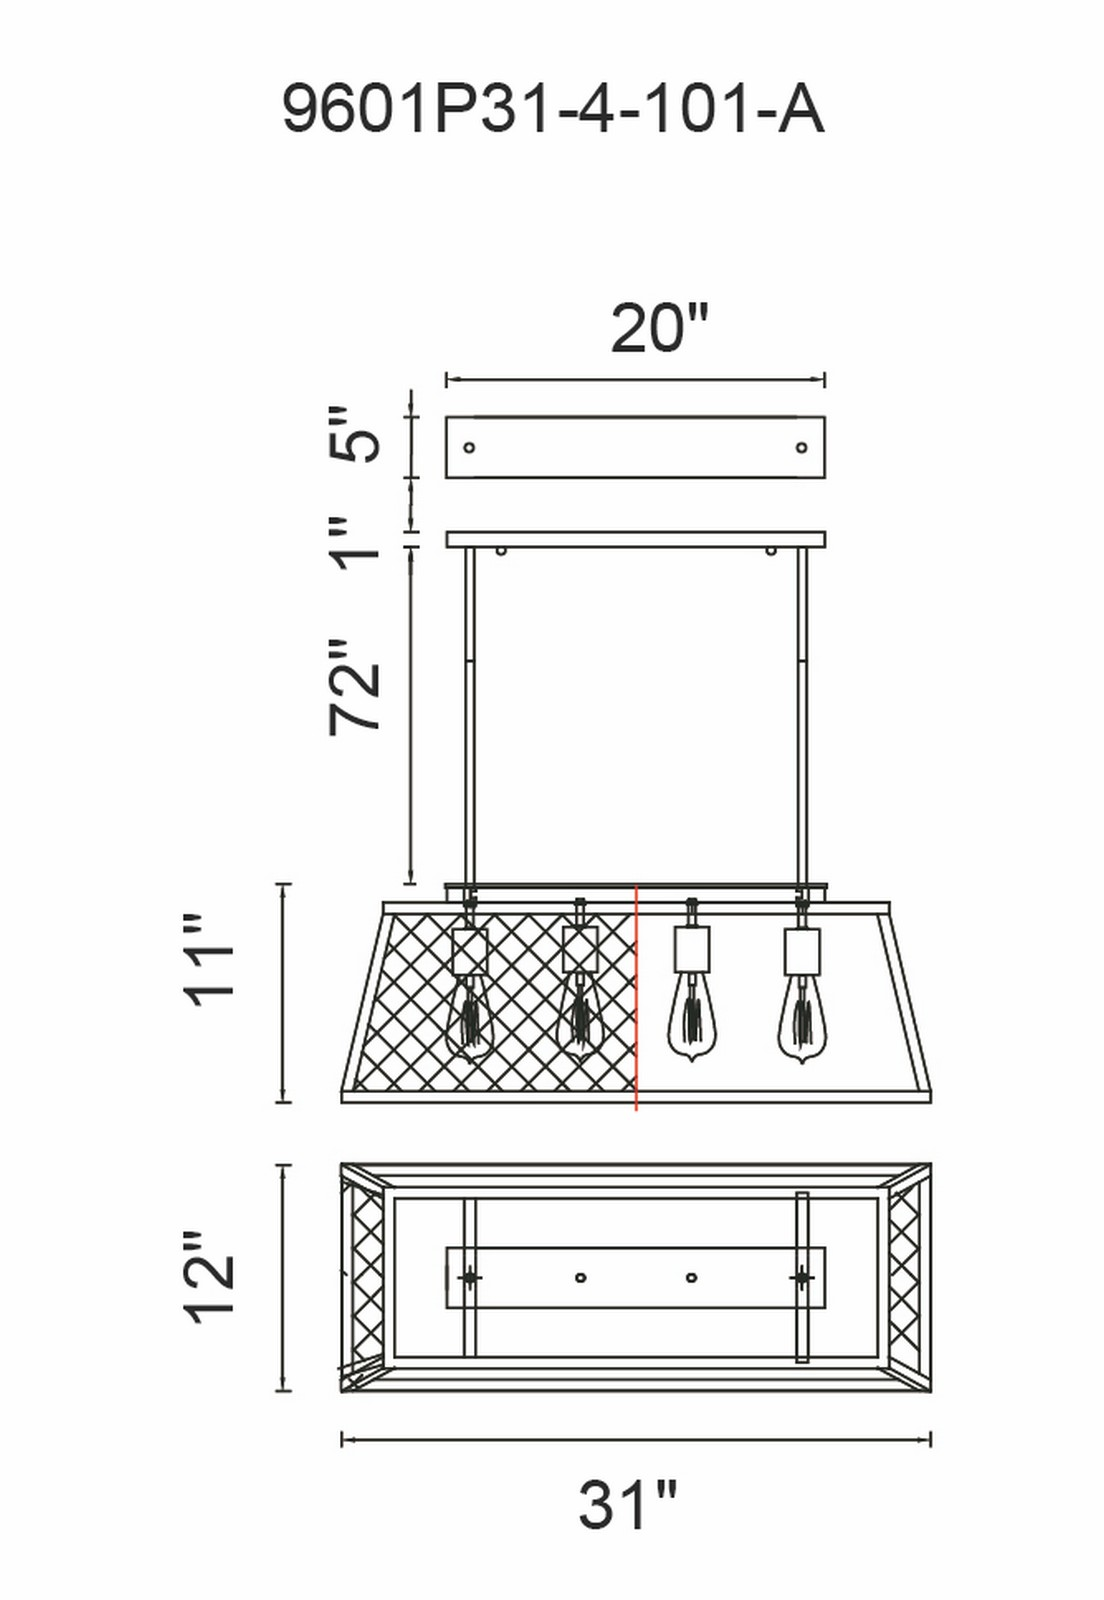 CWI Lighting Macleay 4 Light Down Chandelier With Black Finish Model: 9601P31-4-101-A Line Drawing